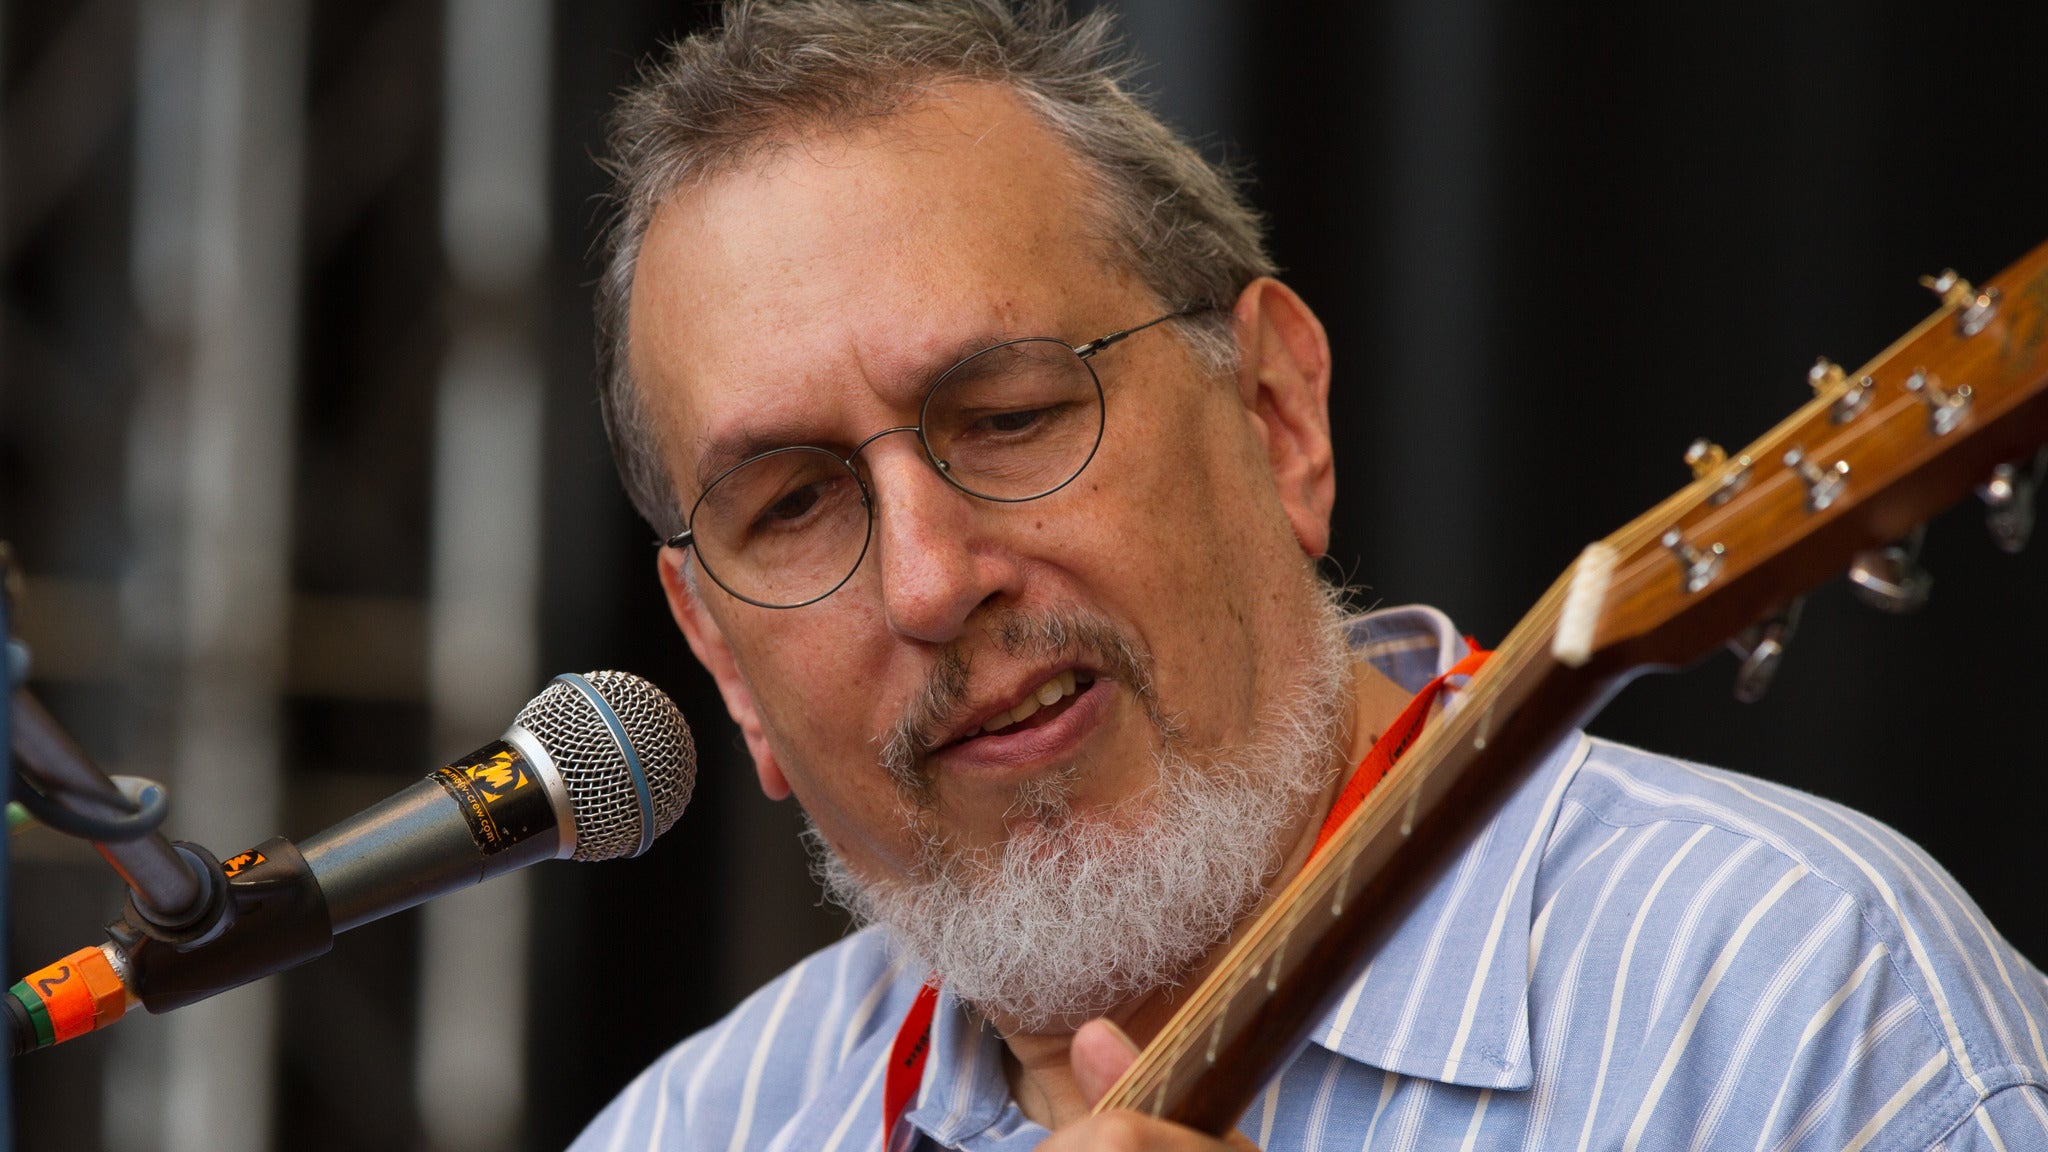 David Bromberg at The Funky Biscuit